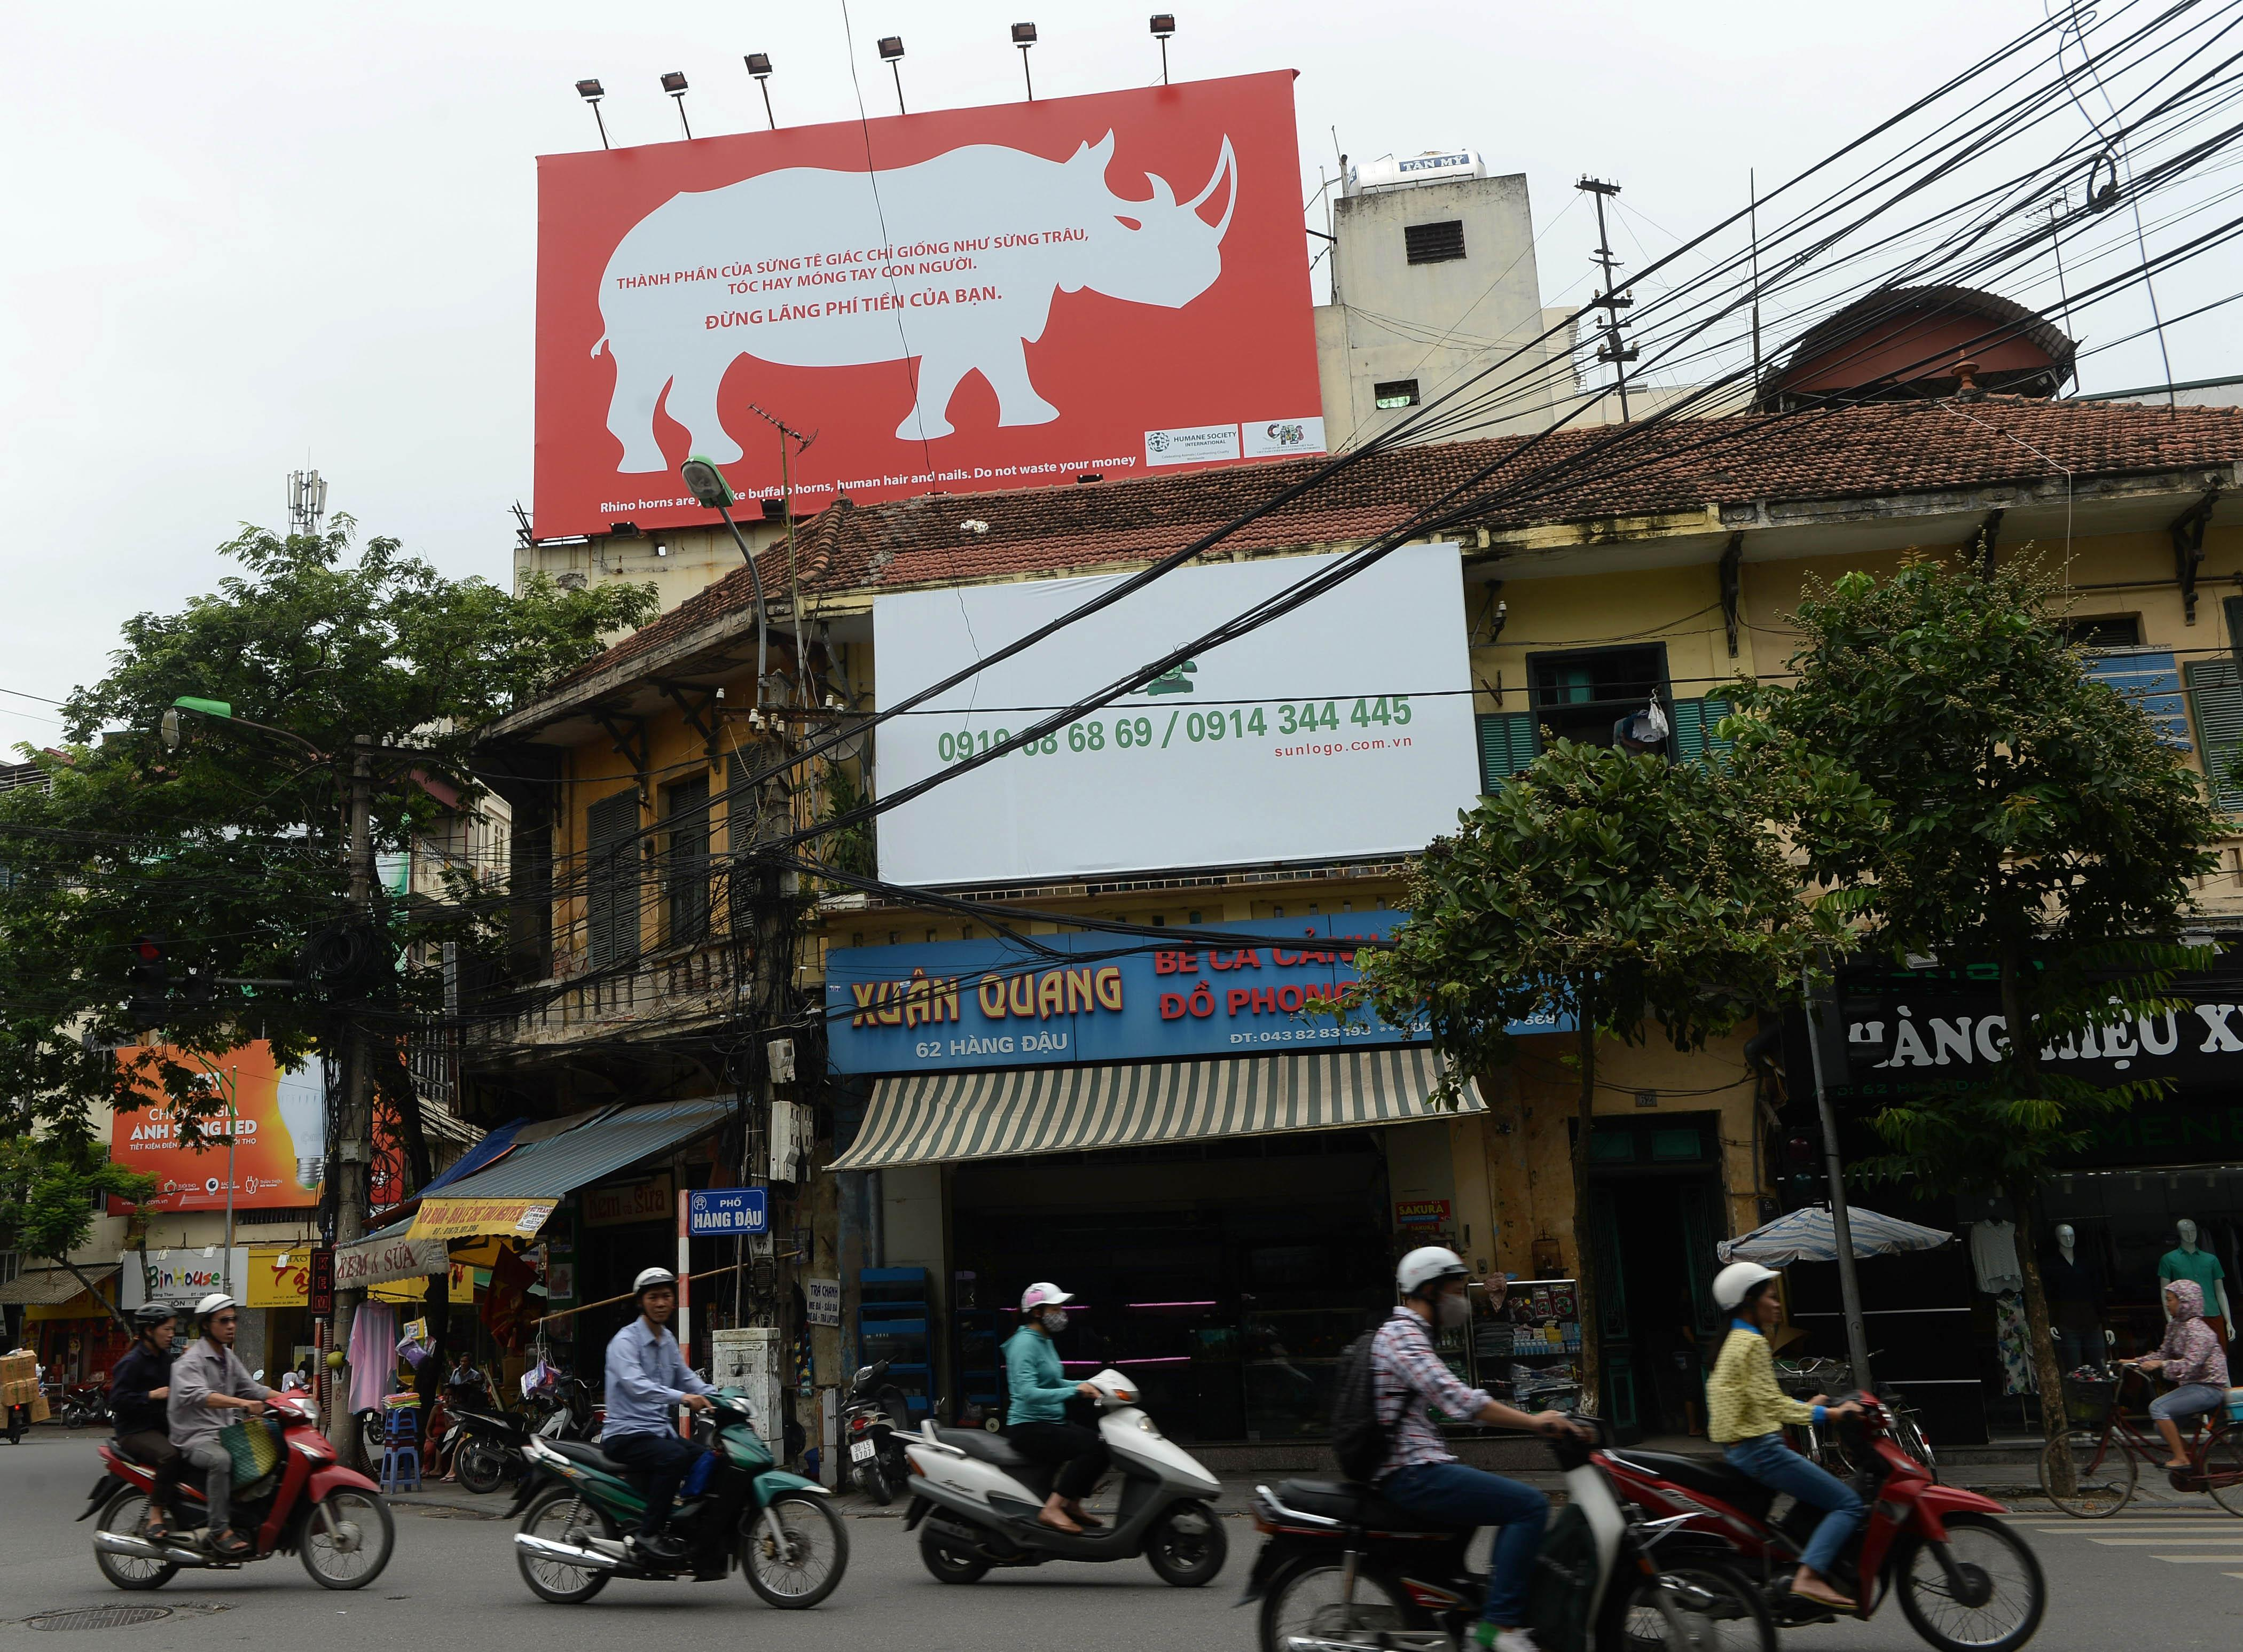 A campaign poster on a building in downtown Hanoi on August 28, 2014 warns people not to buy rhino horn (AFP Photo/Hoang Dinh Nam)